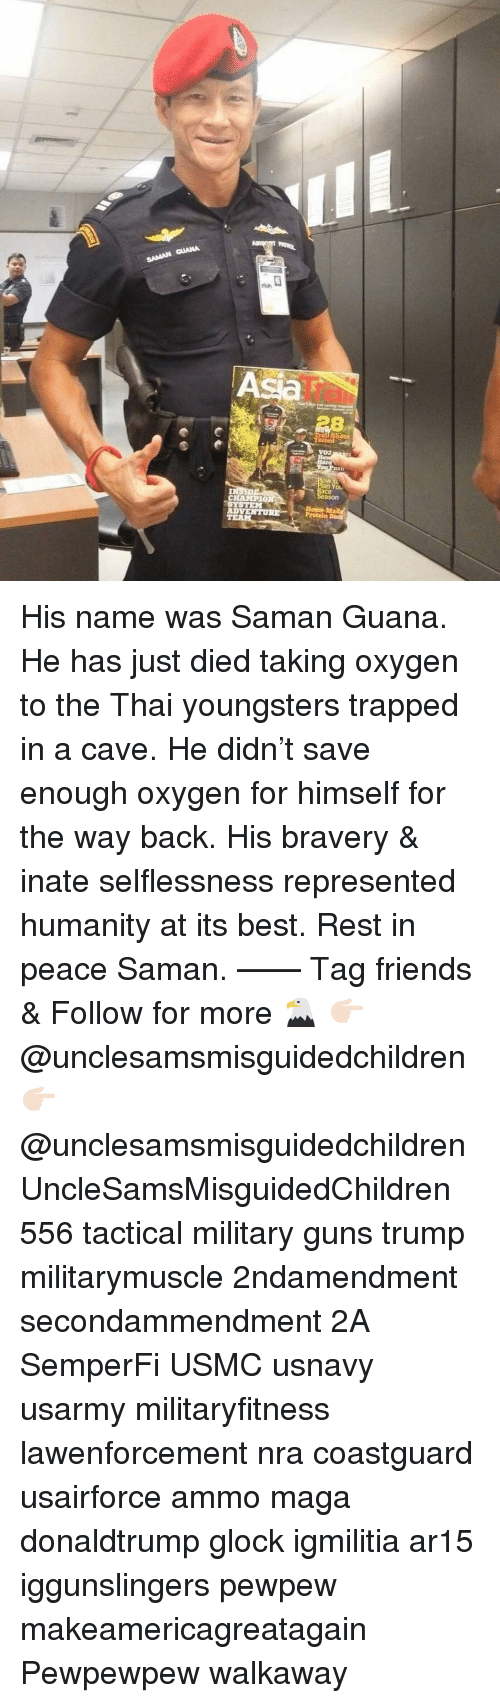 Friends, Guns, and Memes: An  IT  VOZ  n You  ace  ason  CHAMPIO  AD His name was Saman Guana. He has just died taking oxygen to the Thai youngsters trapped in a cave. He didn't save enough oxygen for himself for the way back. His bravery & inate selflessness represented humanity at its best. Rest in peace Saman. —— Tag friends & Follow for more 🦅 👉🏻 @unclesamsmisguidedchildren 👉🏻 @unclesamsmisguidedchildren UncleSamsMisguidedChildren 556 tactical military guns trump militarymuscle 2ndamendment secondammendment 2A SemperFi USMC usnavy usarmy militaryfitness lawenforcement nra coastguard usairforce ammo maga donaldtrump glock igmilitia ar15 iggunslingers pewpew makeamericagreatagain Pewpewpew walkaway